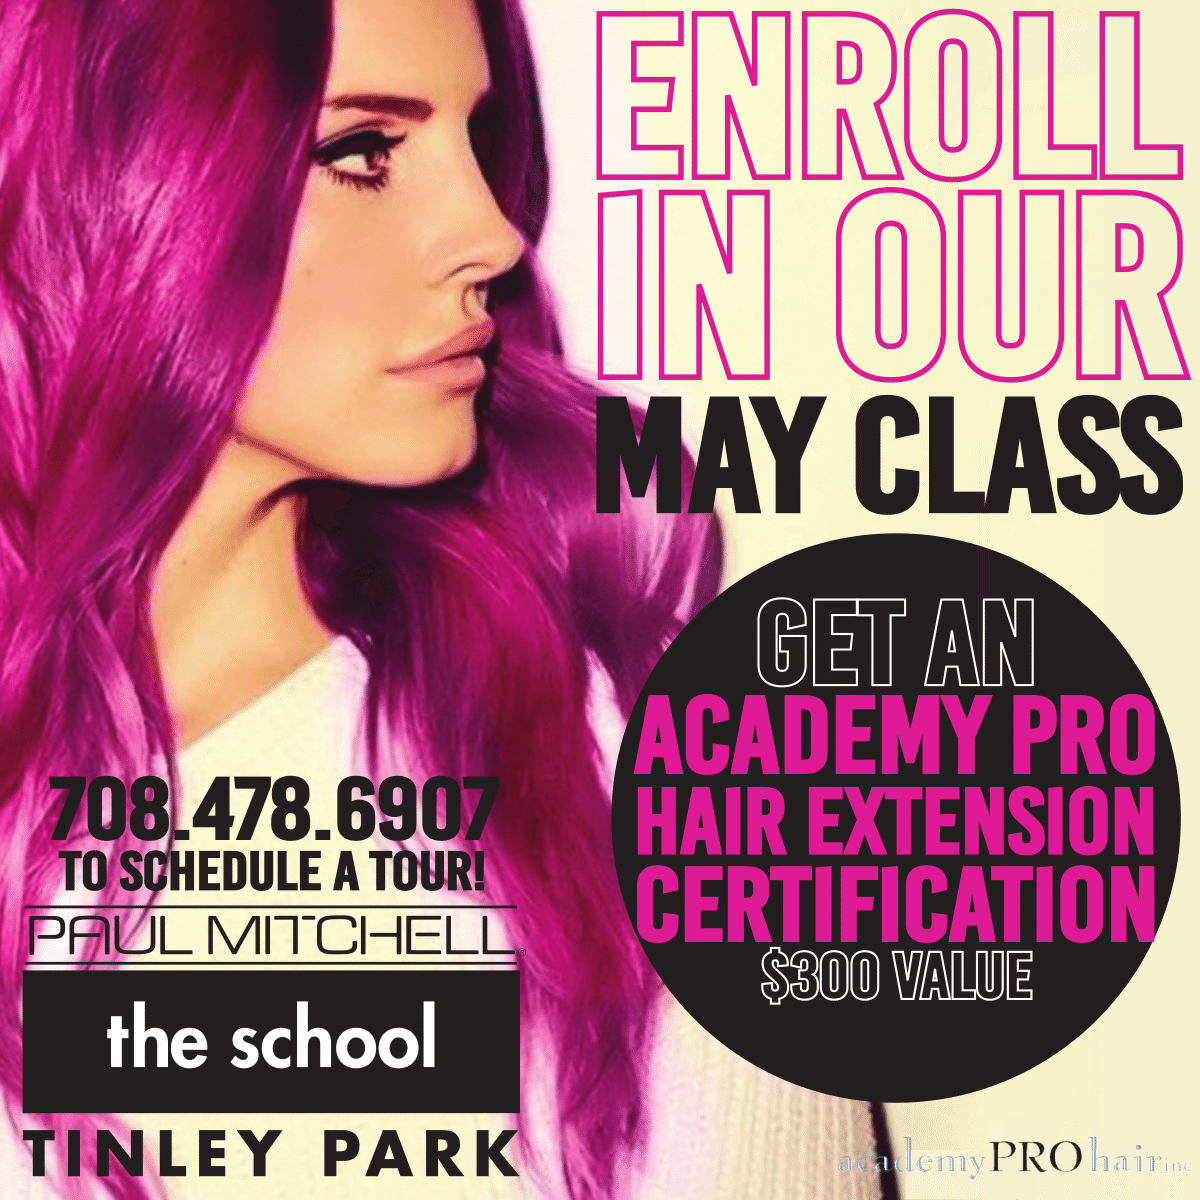 Give your career a new look at Paul Mitchell! Start now